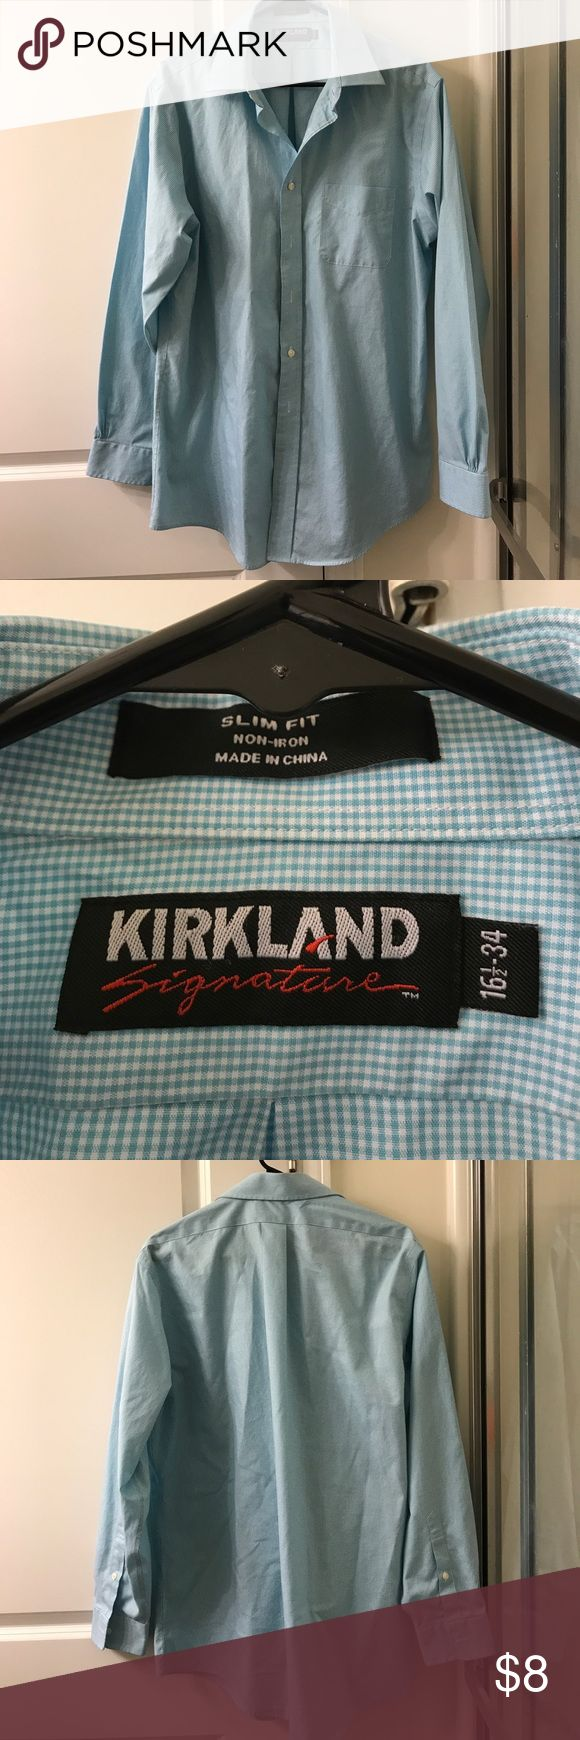 "LIKE NEW Kirkland Signature Slim Fit dress shirt Slim fit, non-iron, blue and white checked print dress shirt. Size 16 1/2"" 34 Kirkland Signature Shirts Dress Shirts"